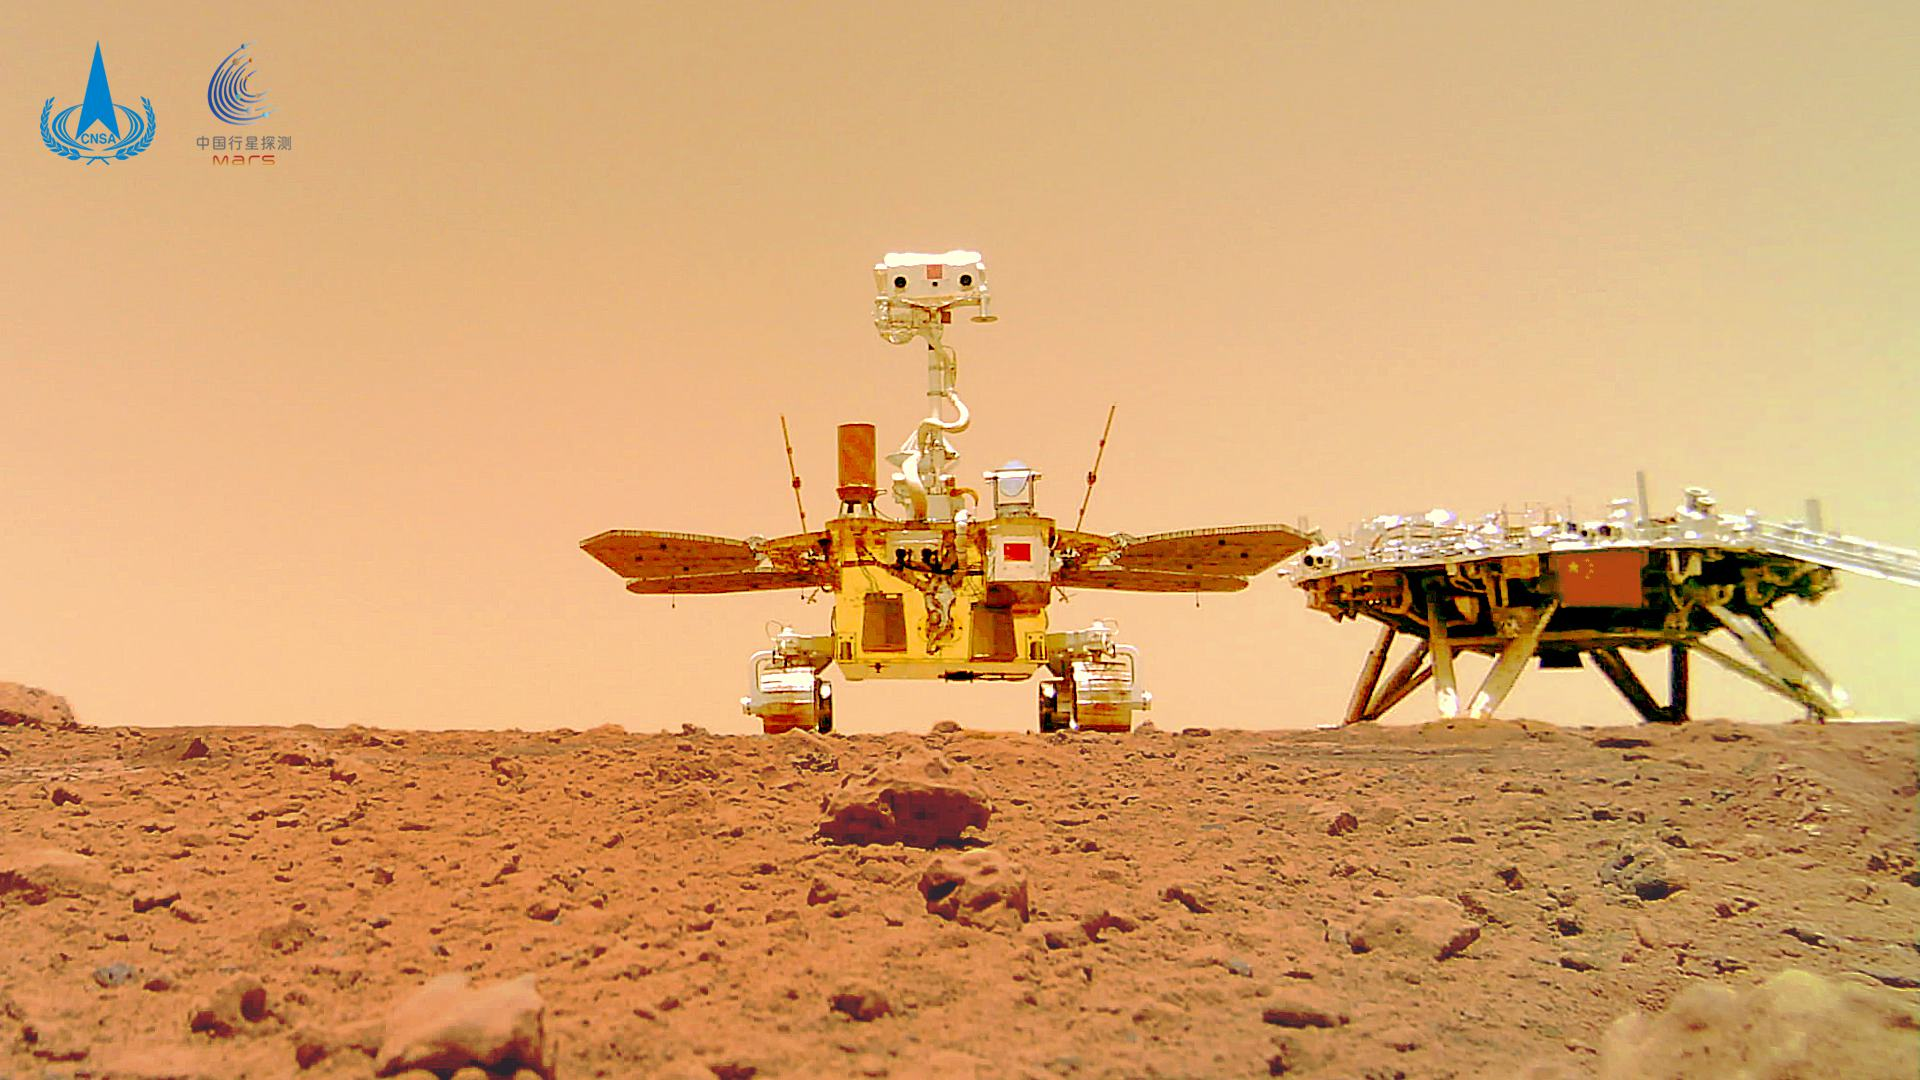 China Zhurong Rover Snaps Unique Stunning Selfie with Lander Platform on Red Planet